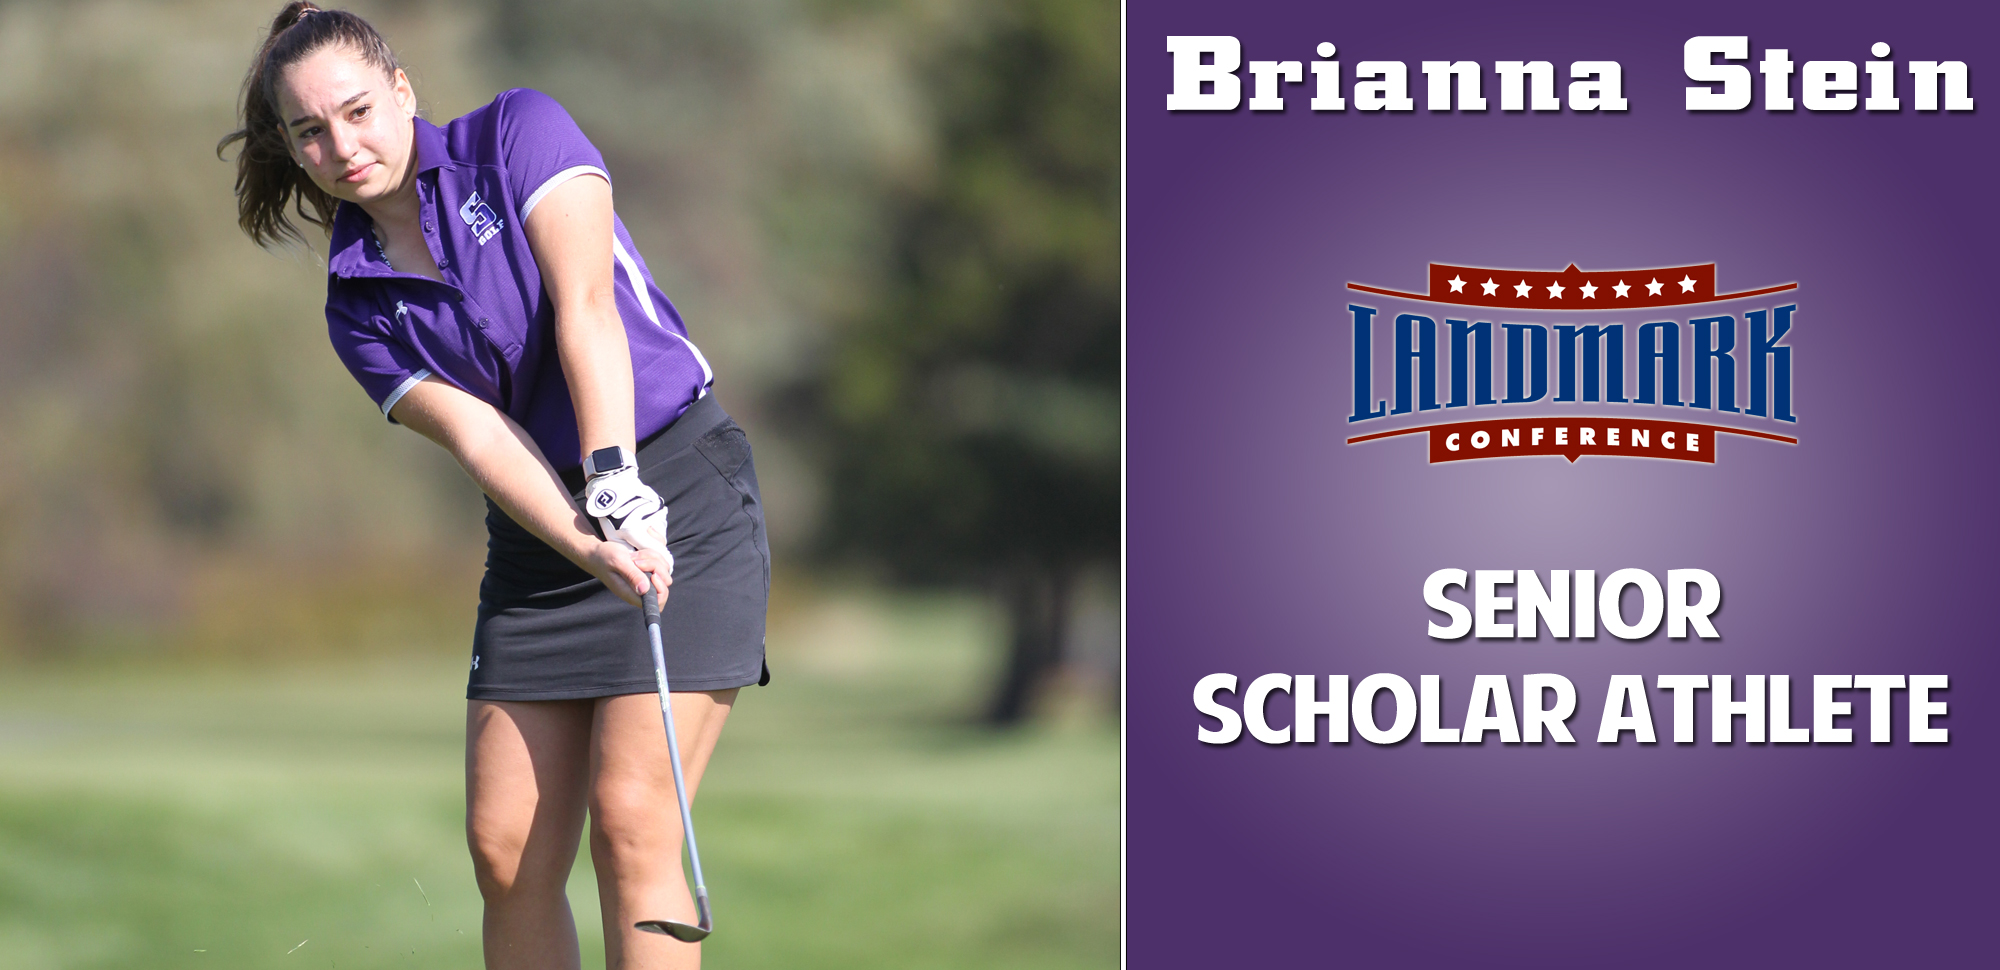 Brianna Stein became the second women's golfer to earn the Landmark Conference's Senior Scholar Athlete Award on Monday afternoon.